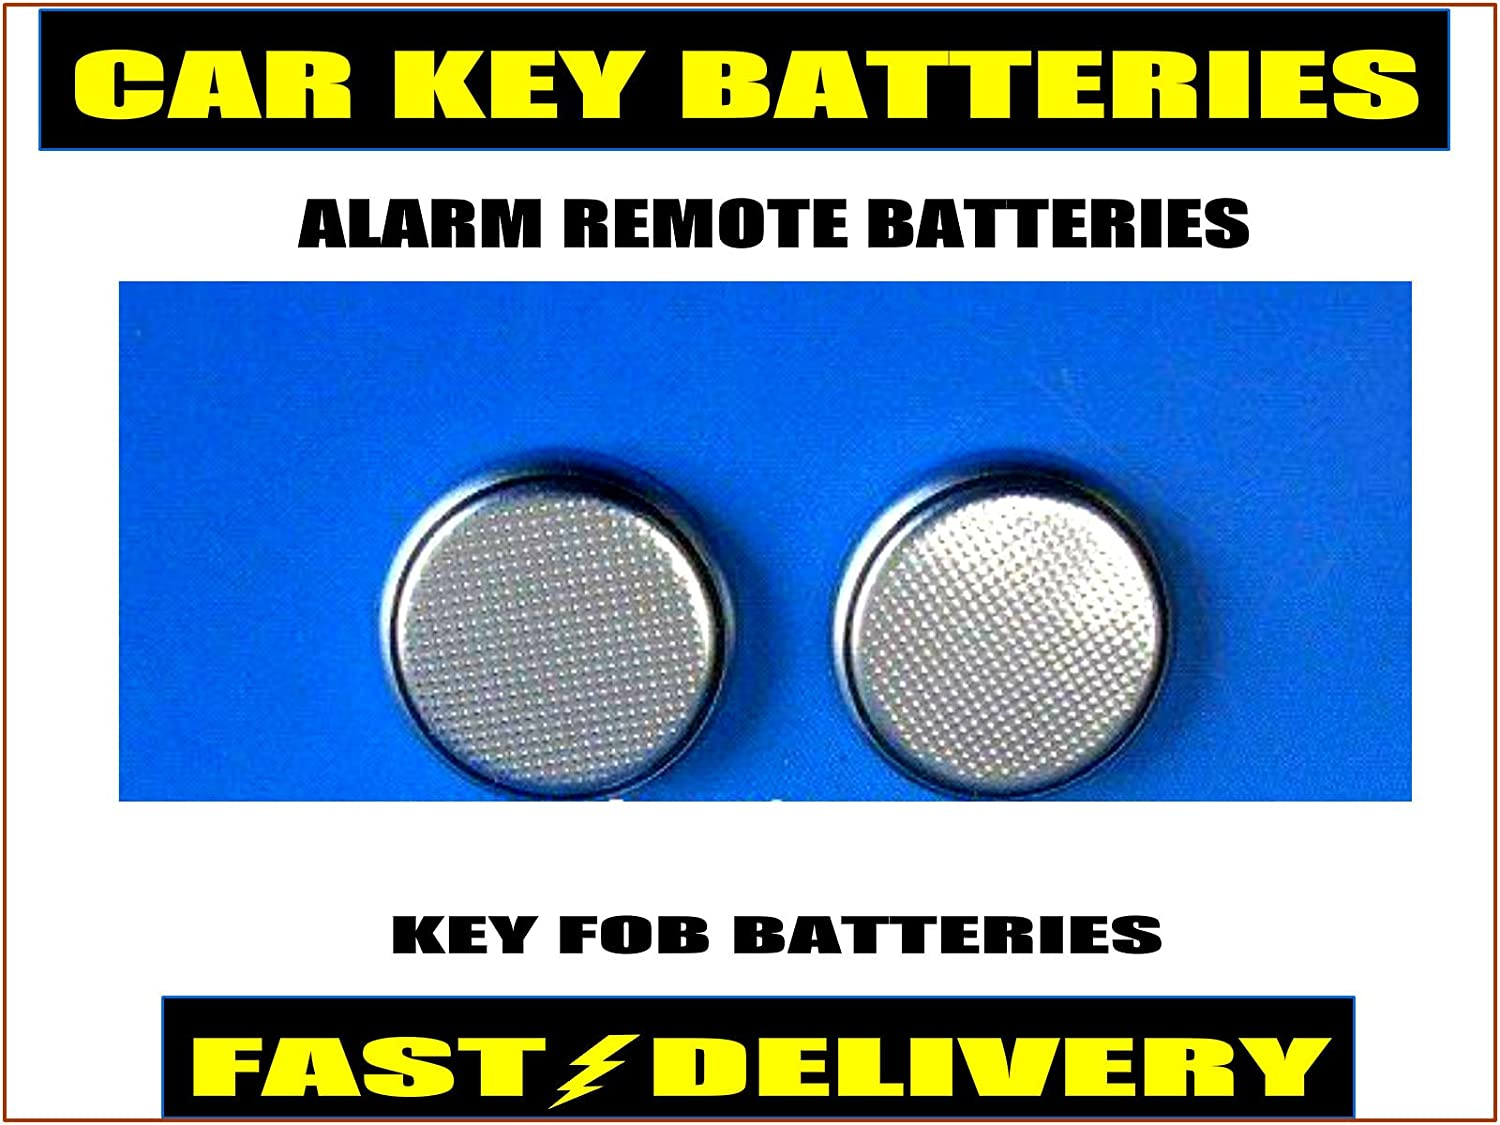 Volkswagen Car Key Batteries CR1620 Alarm Remote Fob Batteries 1620 Eunicell AG0